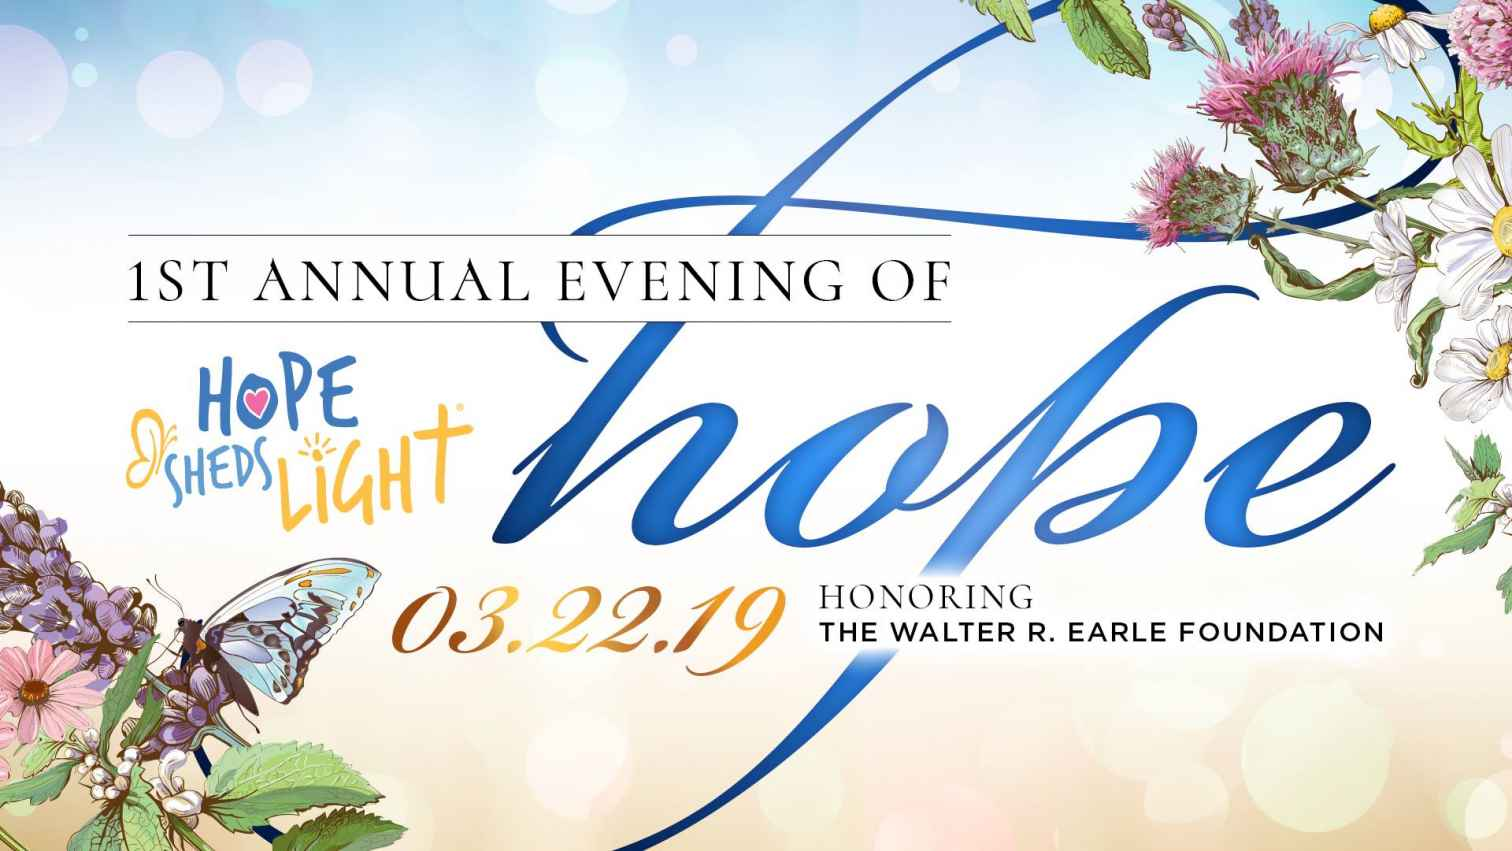 The 1st Annual Evening of HOPE will be held on March 22 at The Asbury Hotel.